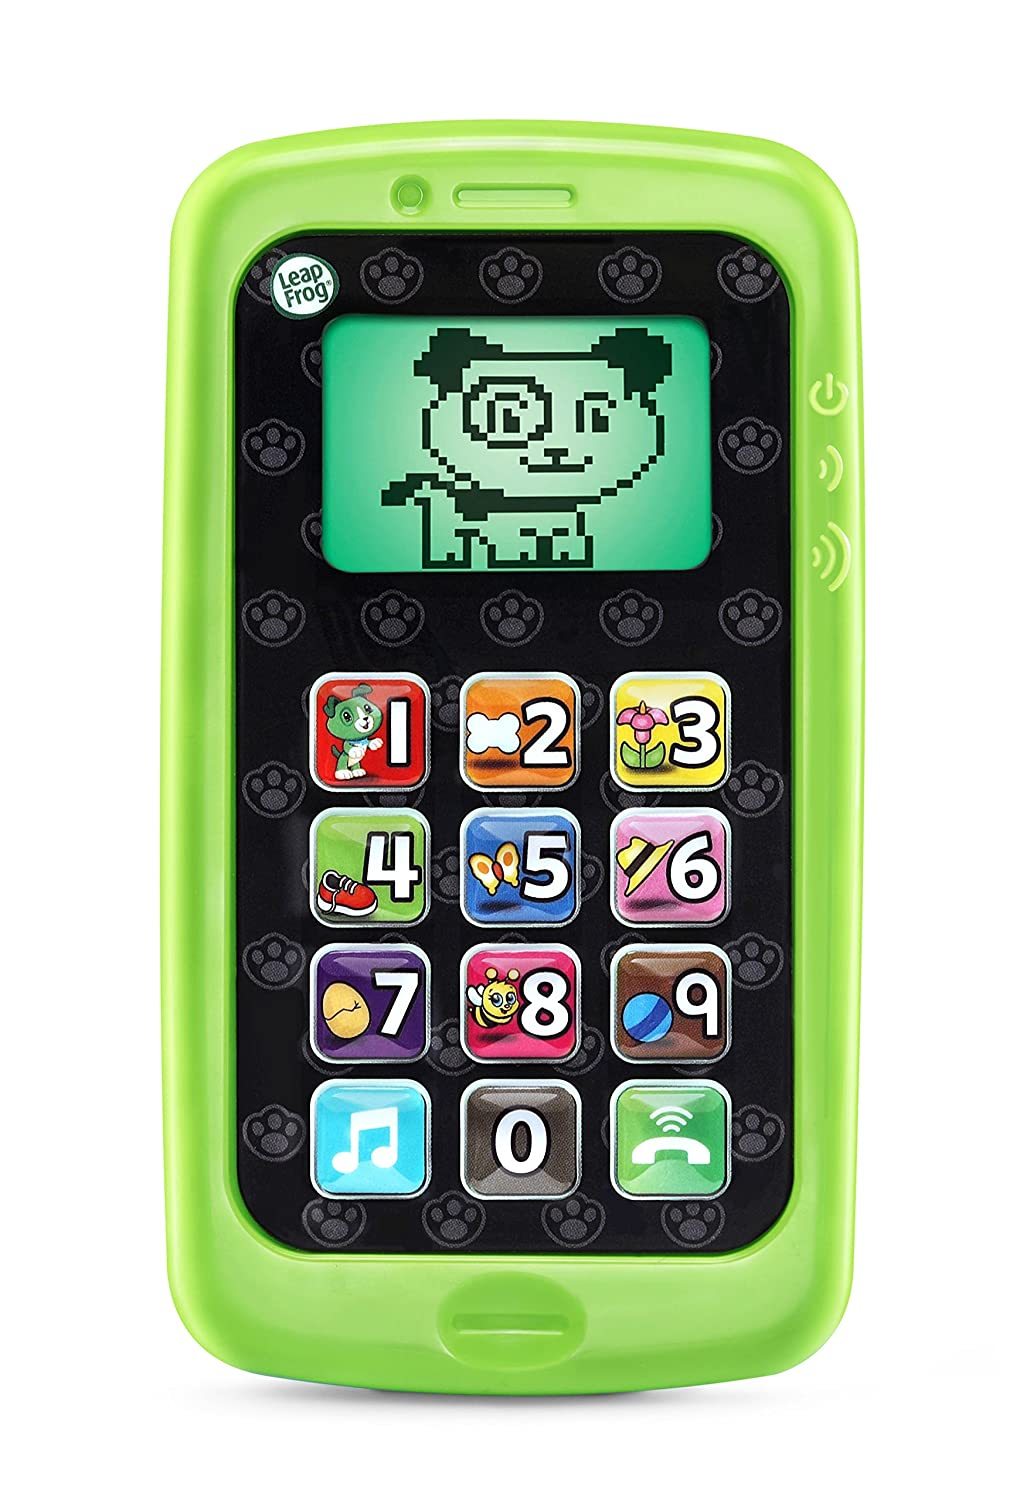 B002QNM8NQ LeapFrog Chat and Count Smart Phone, Scout 81AU-G9OGuL